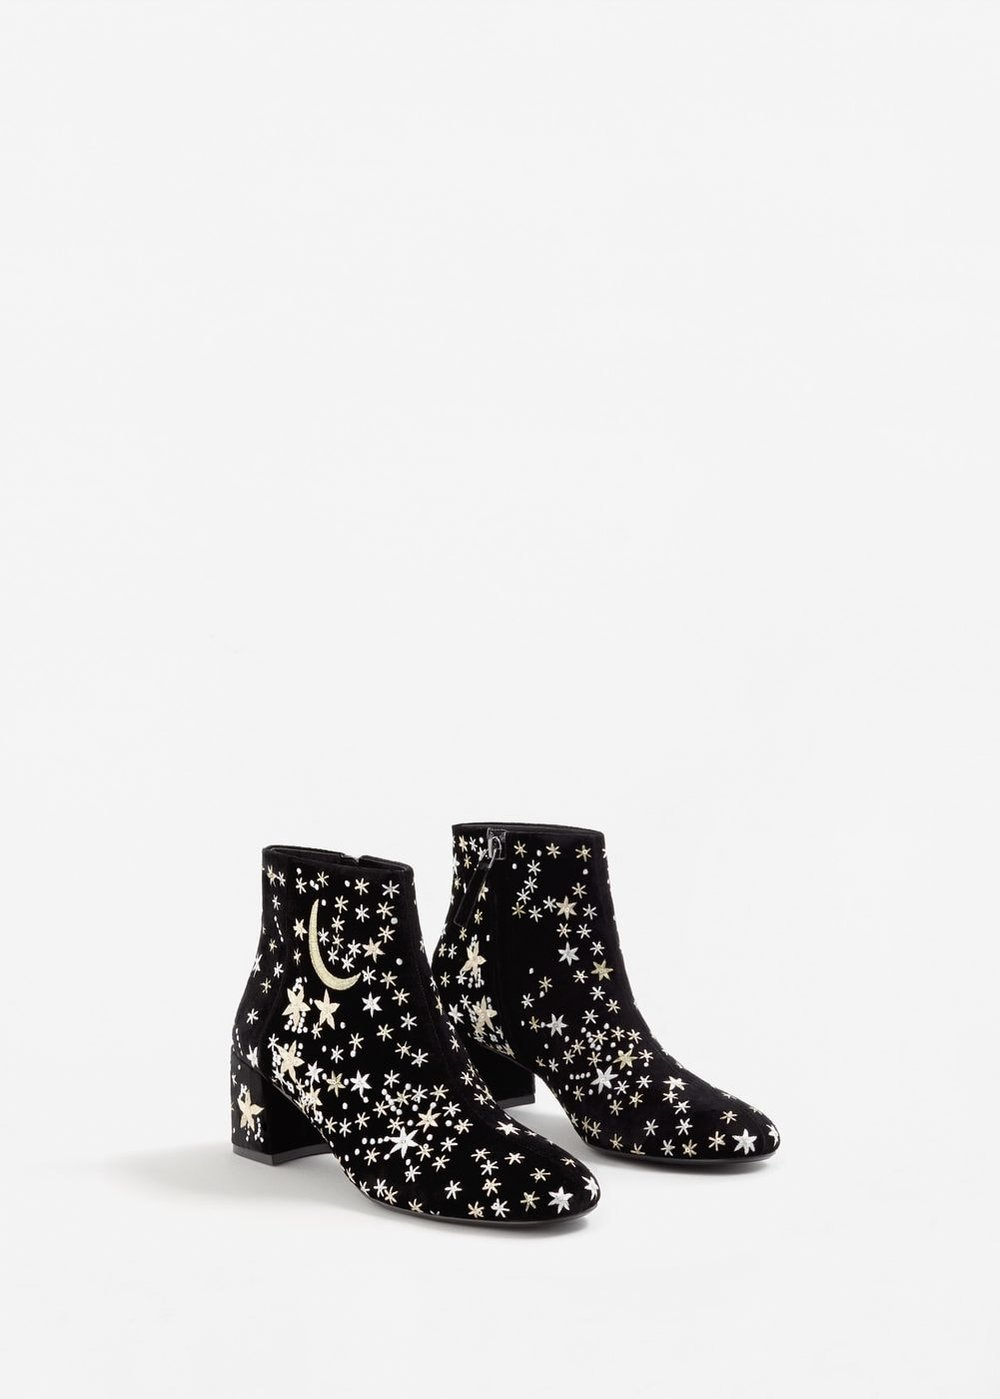 Stars embroidered ankle boots - mango £69.99